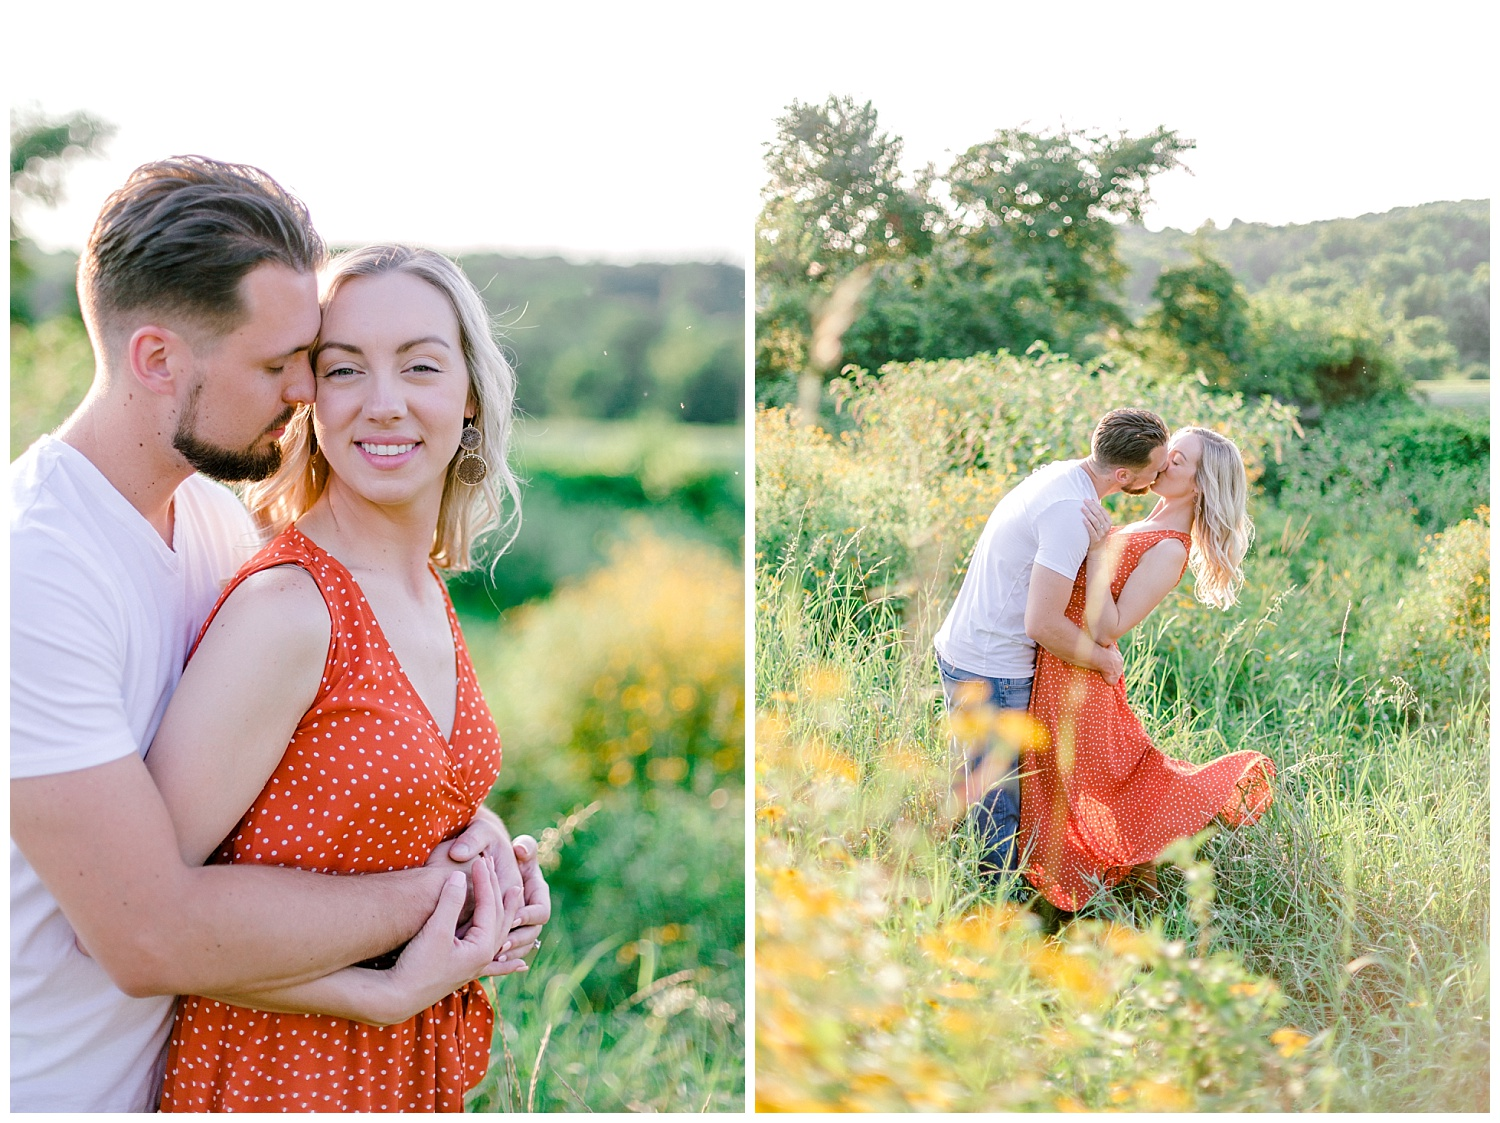 Blue Marsh Lake Reading Pennsylvania flower field golden hour engagement session by PA based wedding and lifestyle photographer Lytle photography_0017.jpg